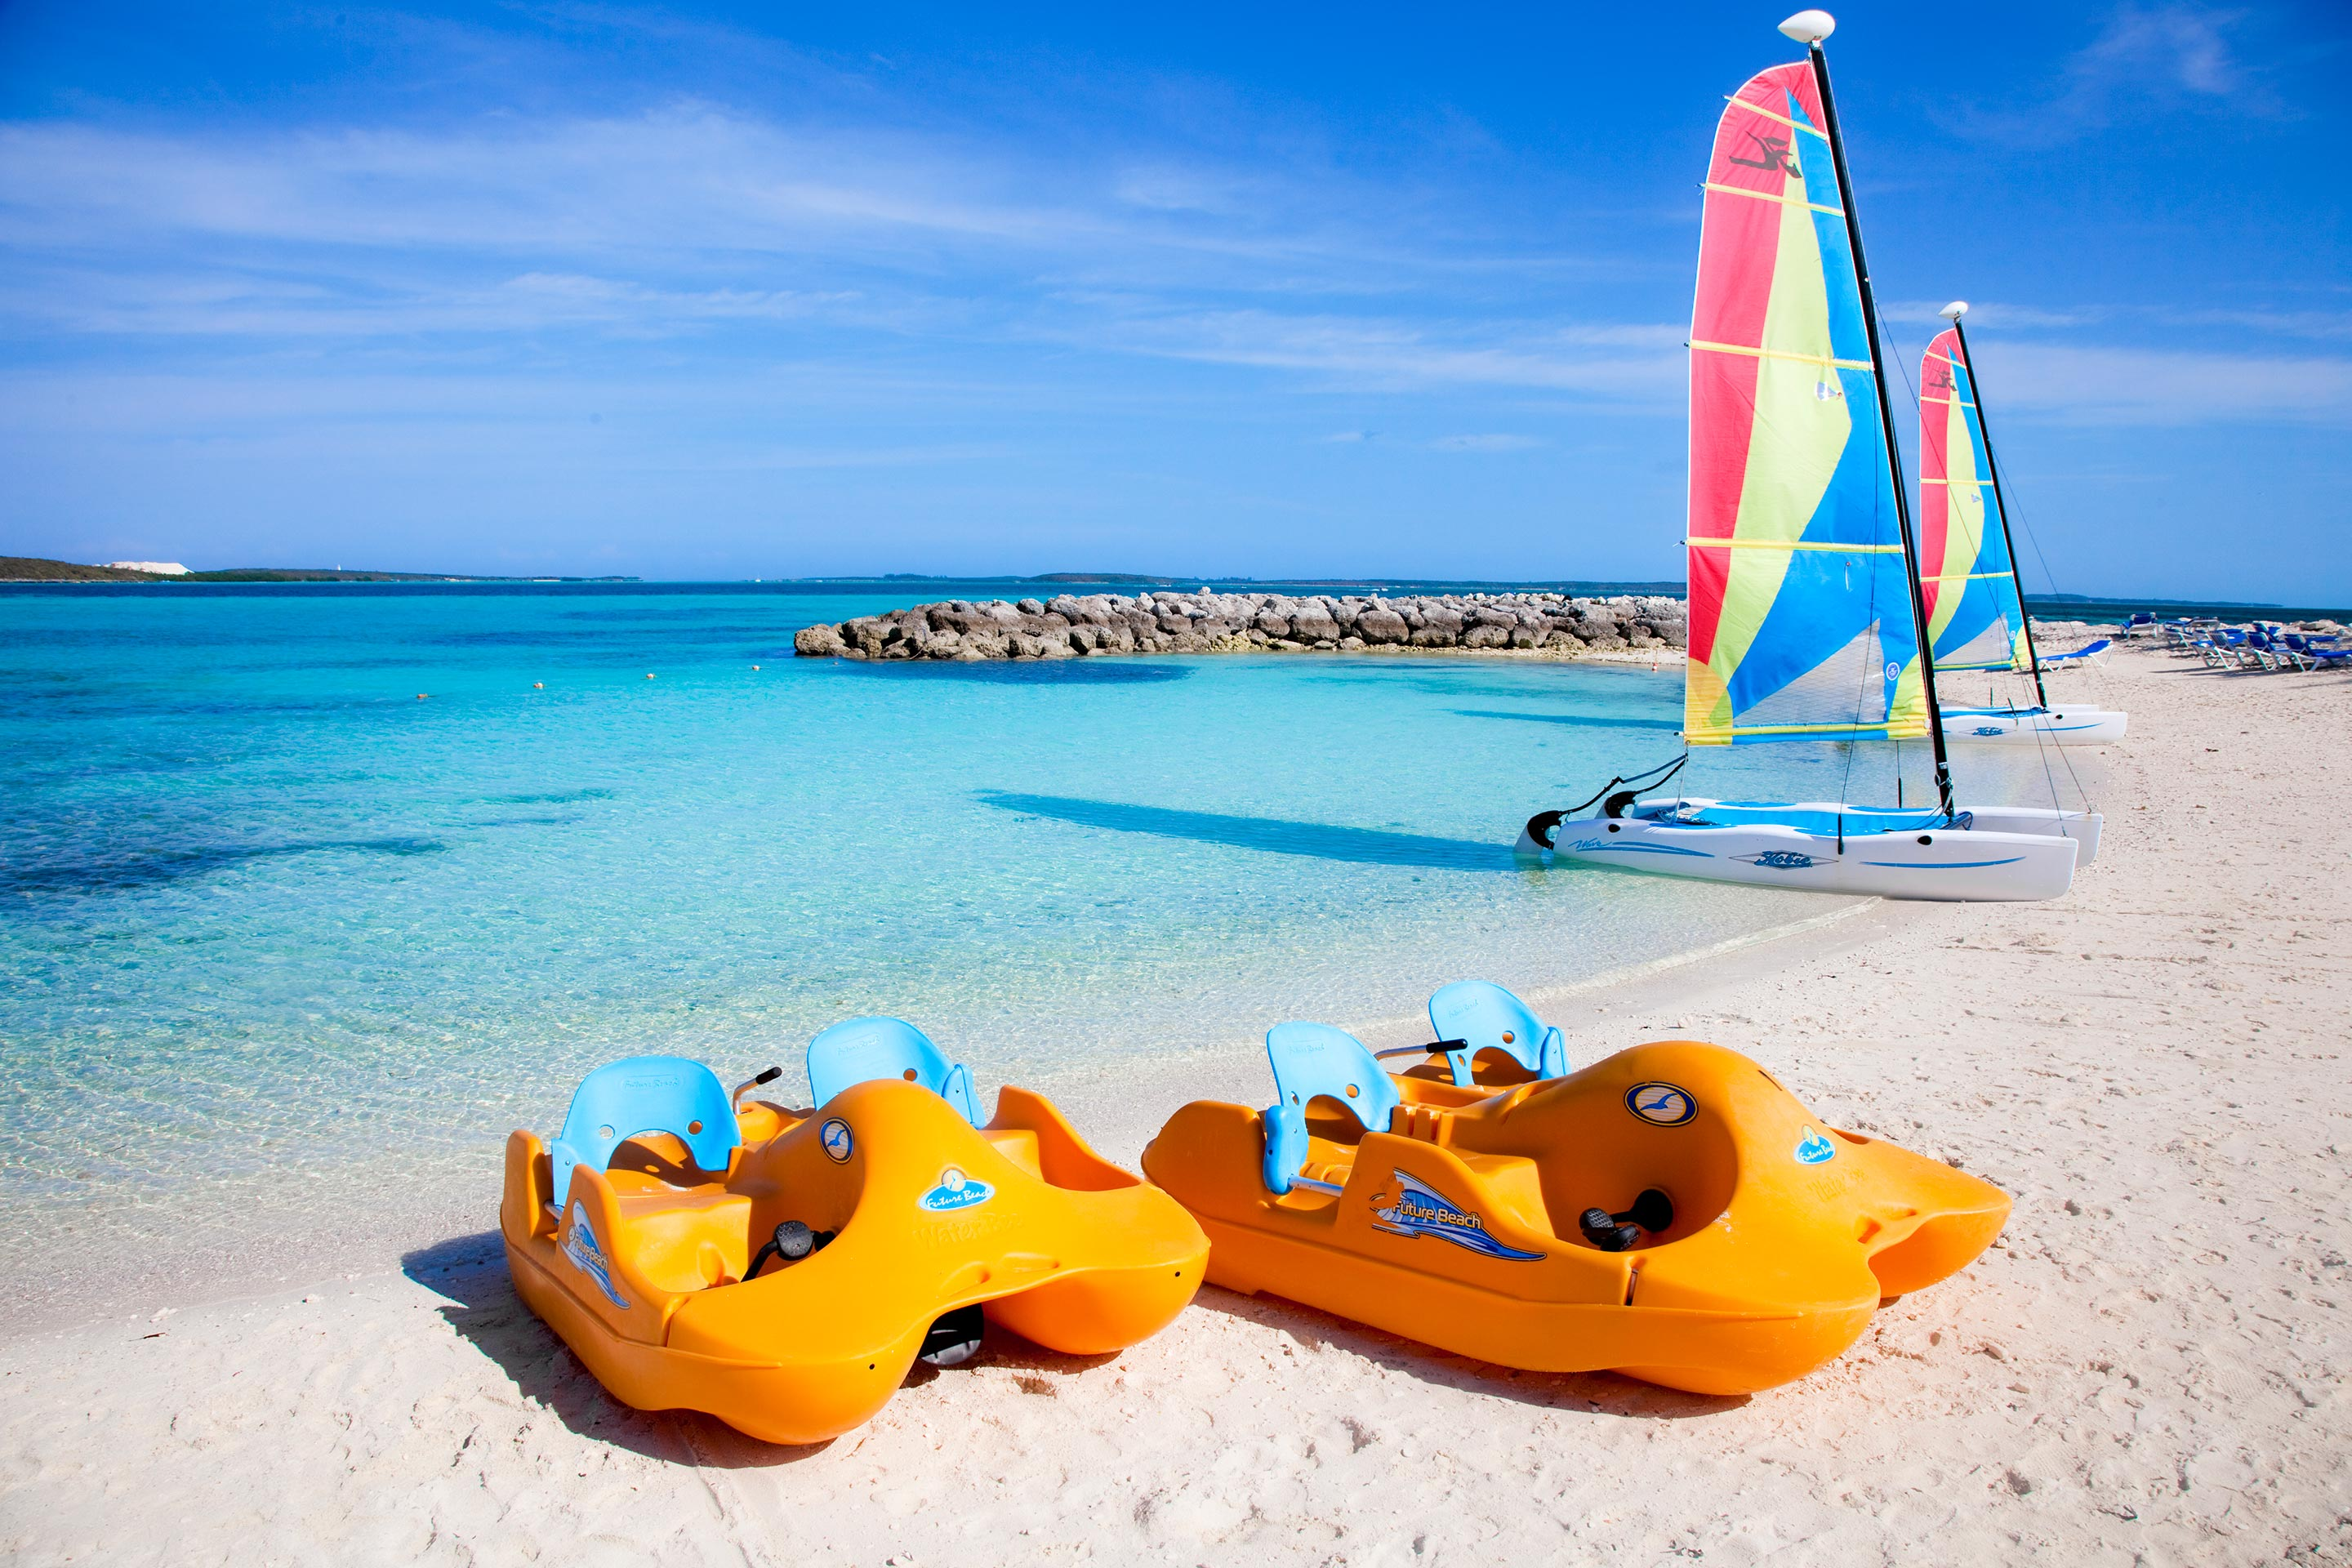 Two paddle boats on a beach in CocoCay, Bahamas